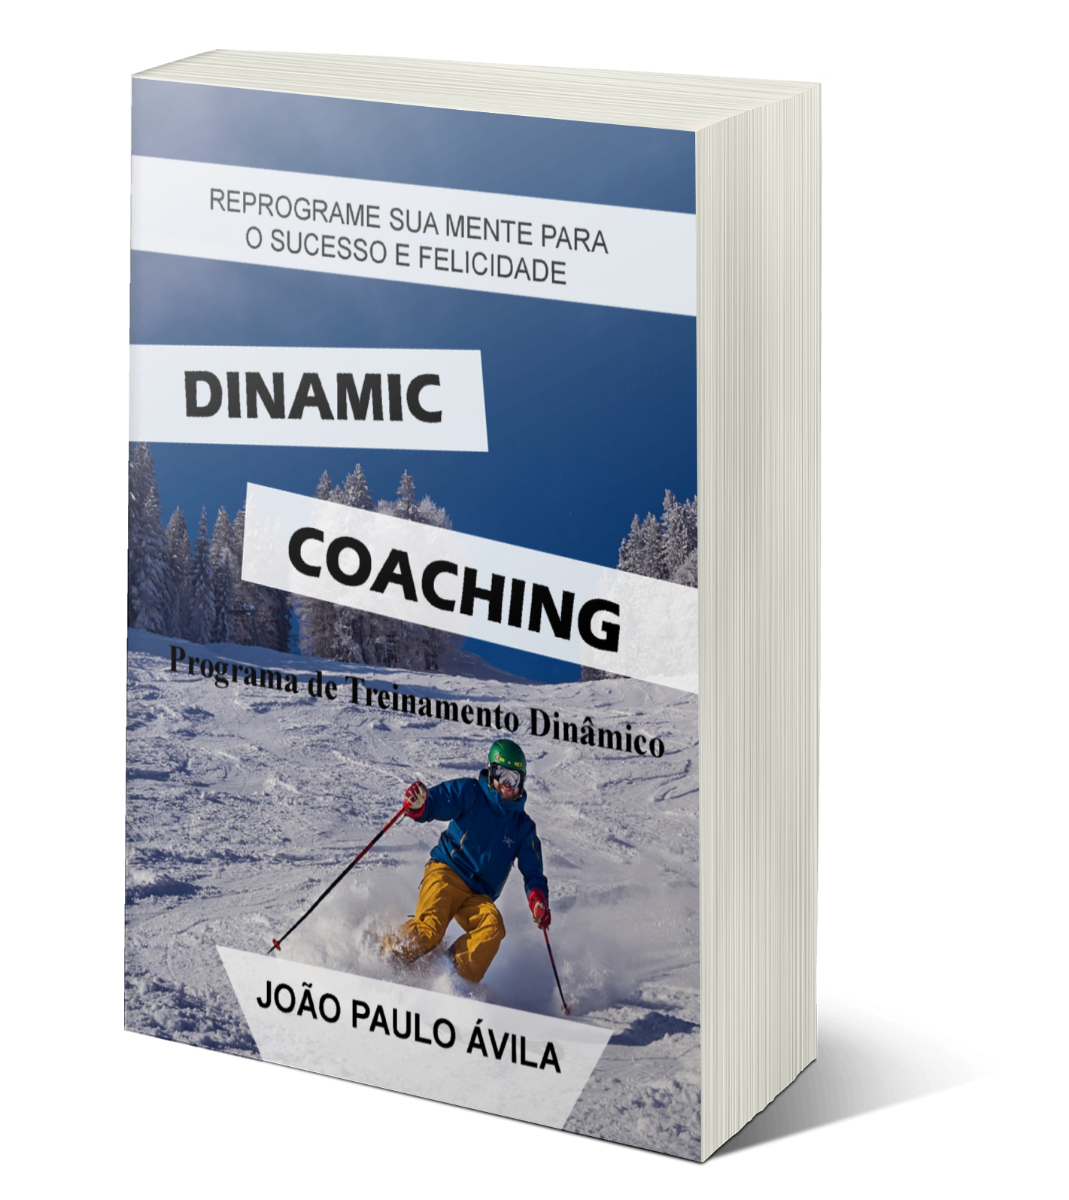 Curso Dinamic Coaching